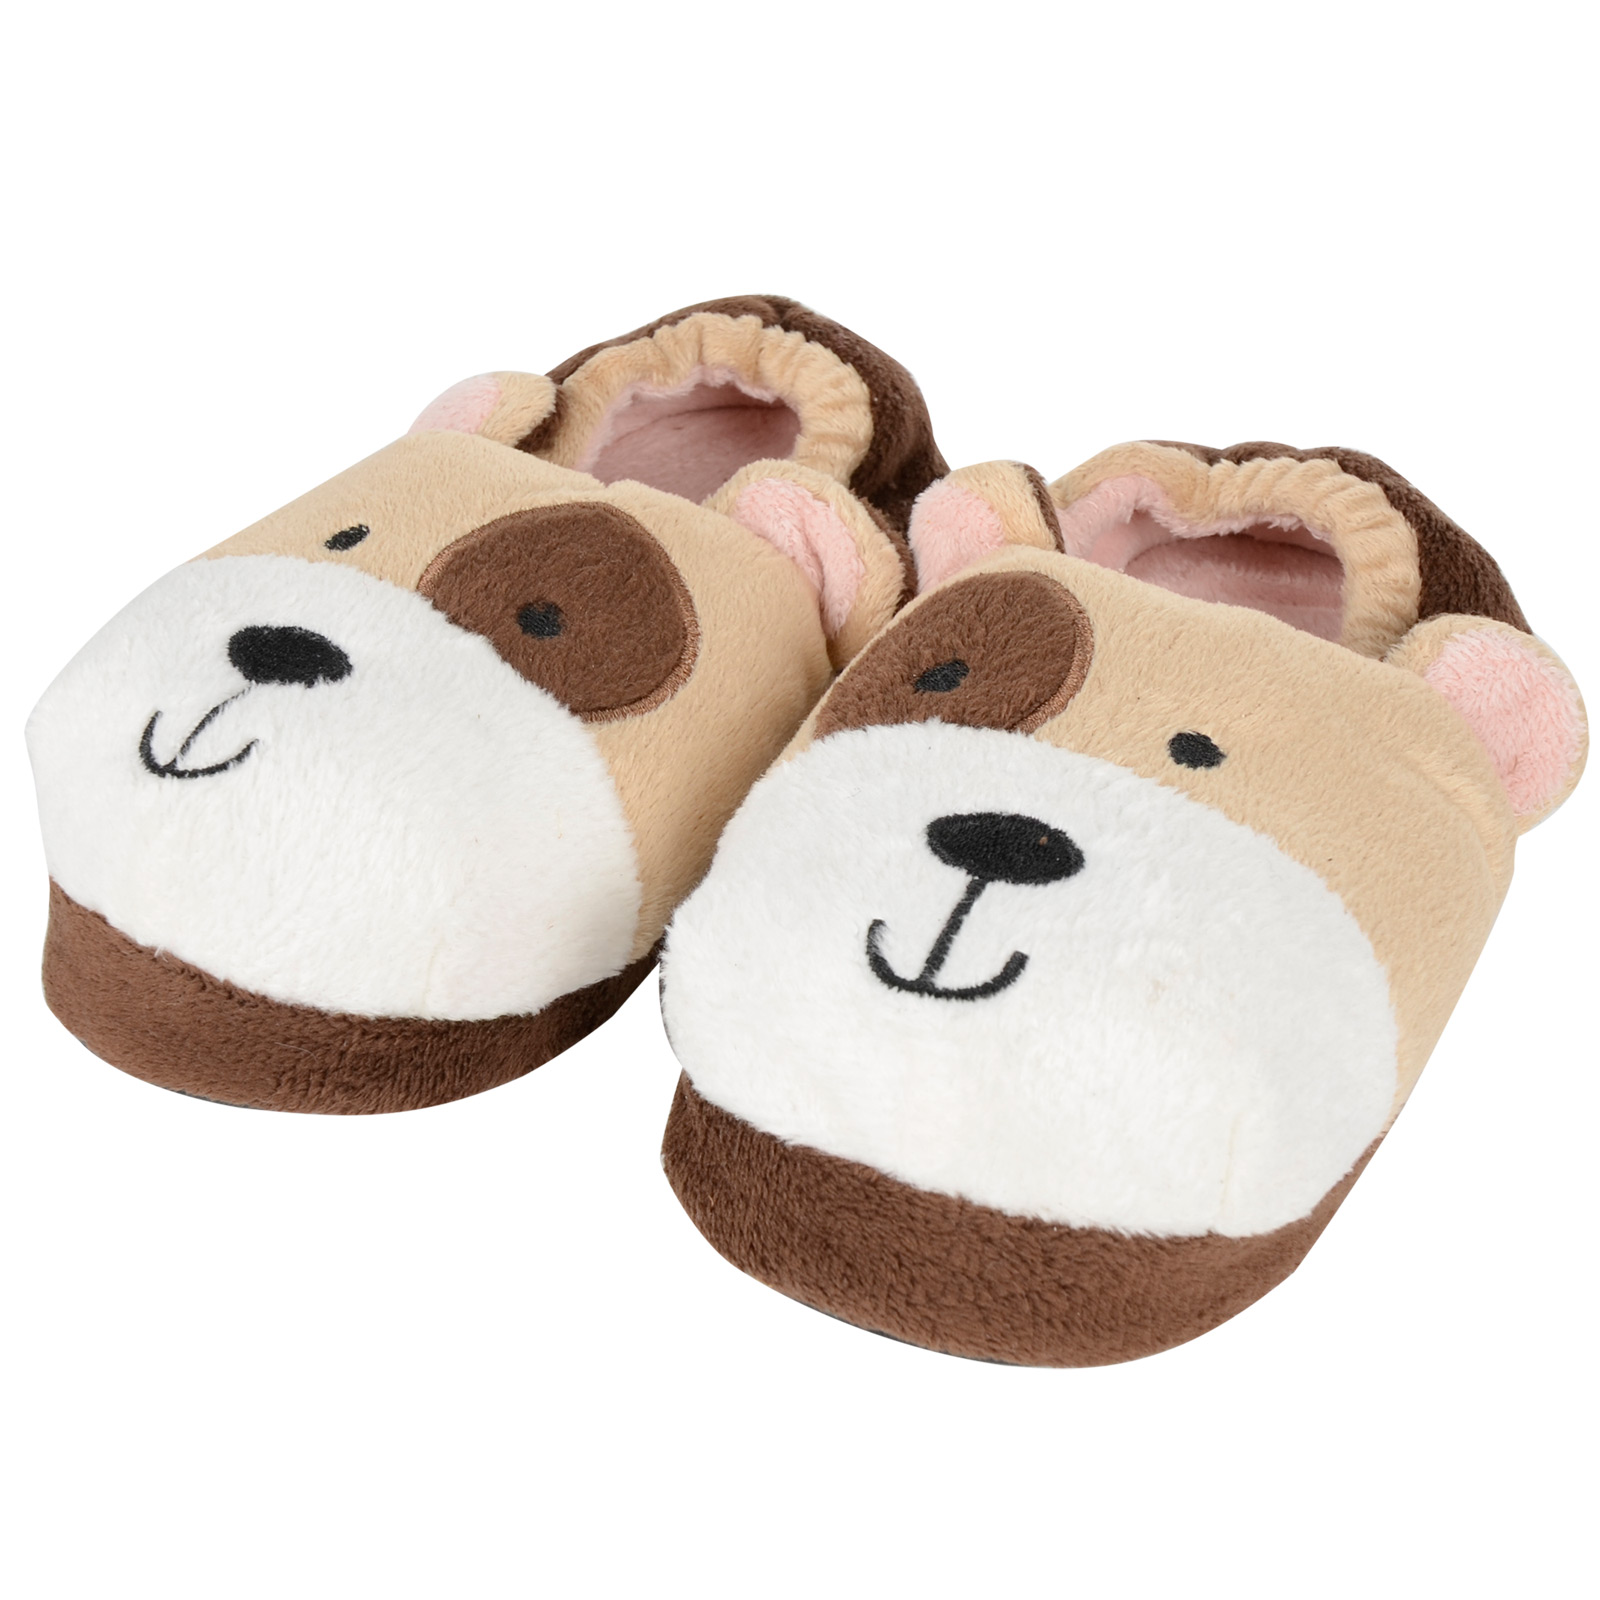 Topcobe Pet Puppy Shoes Anti-Slip Snow Shoes, Soft Rain Booties Boots for Dogs / Cats, TS Lightweight Waterproof Puppy Cats Shoes(S: